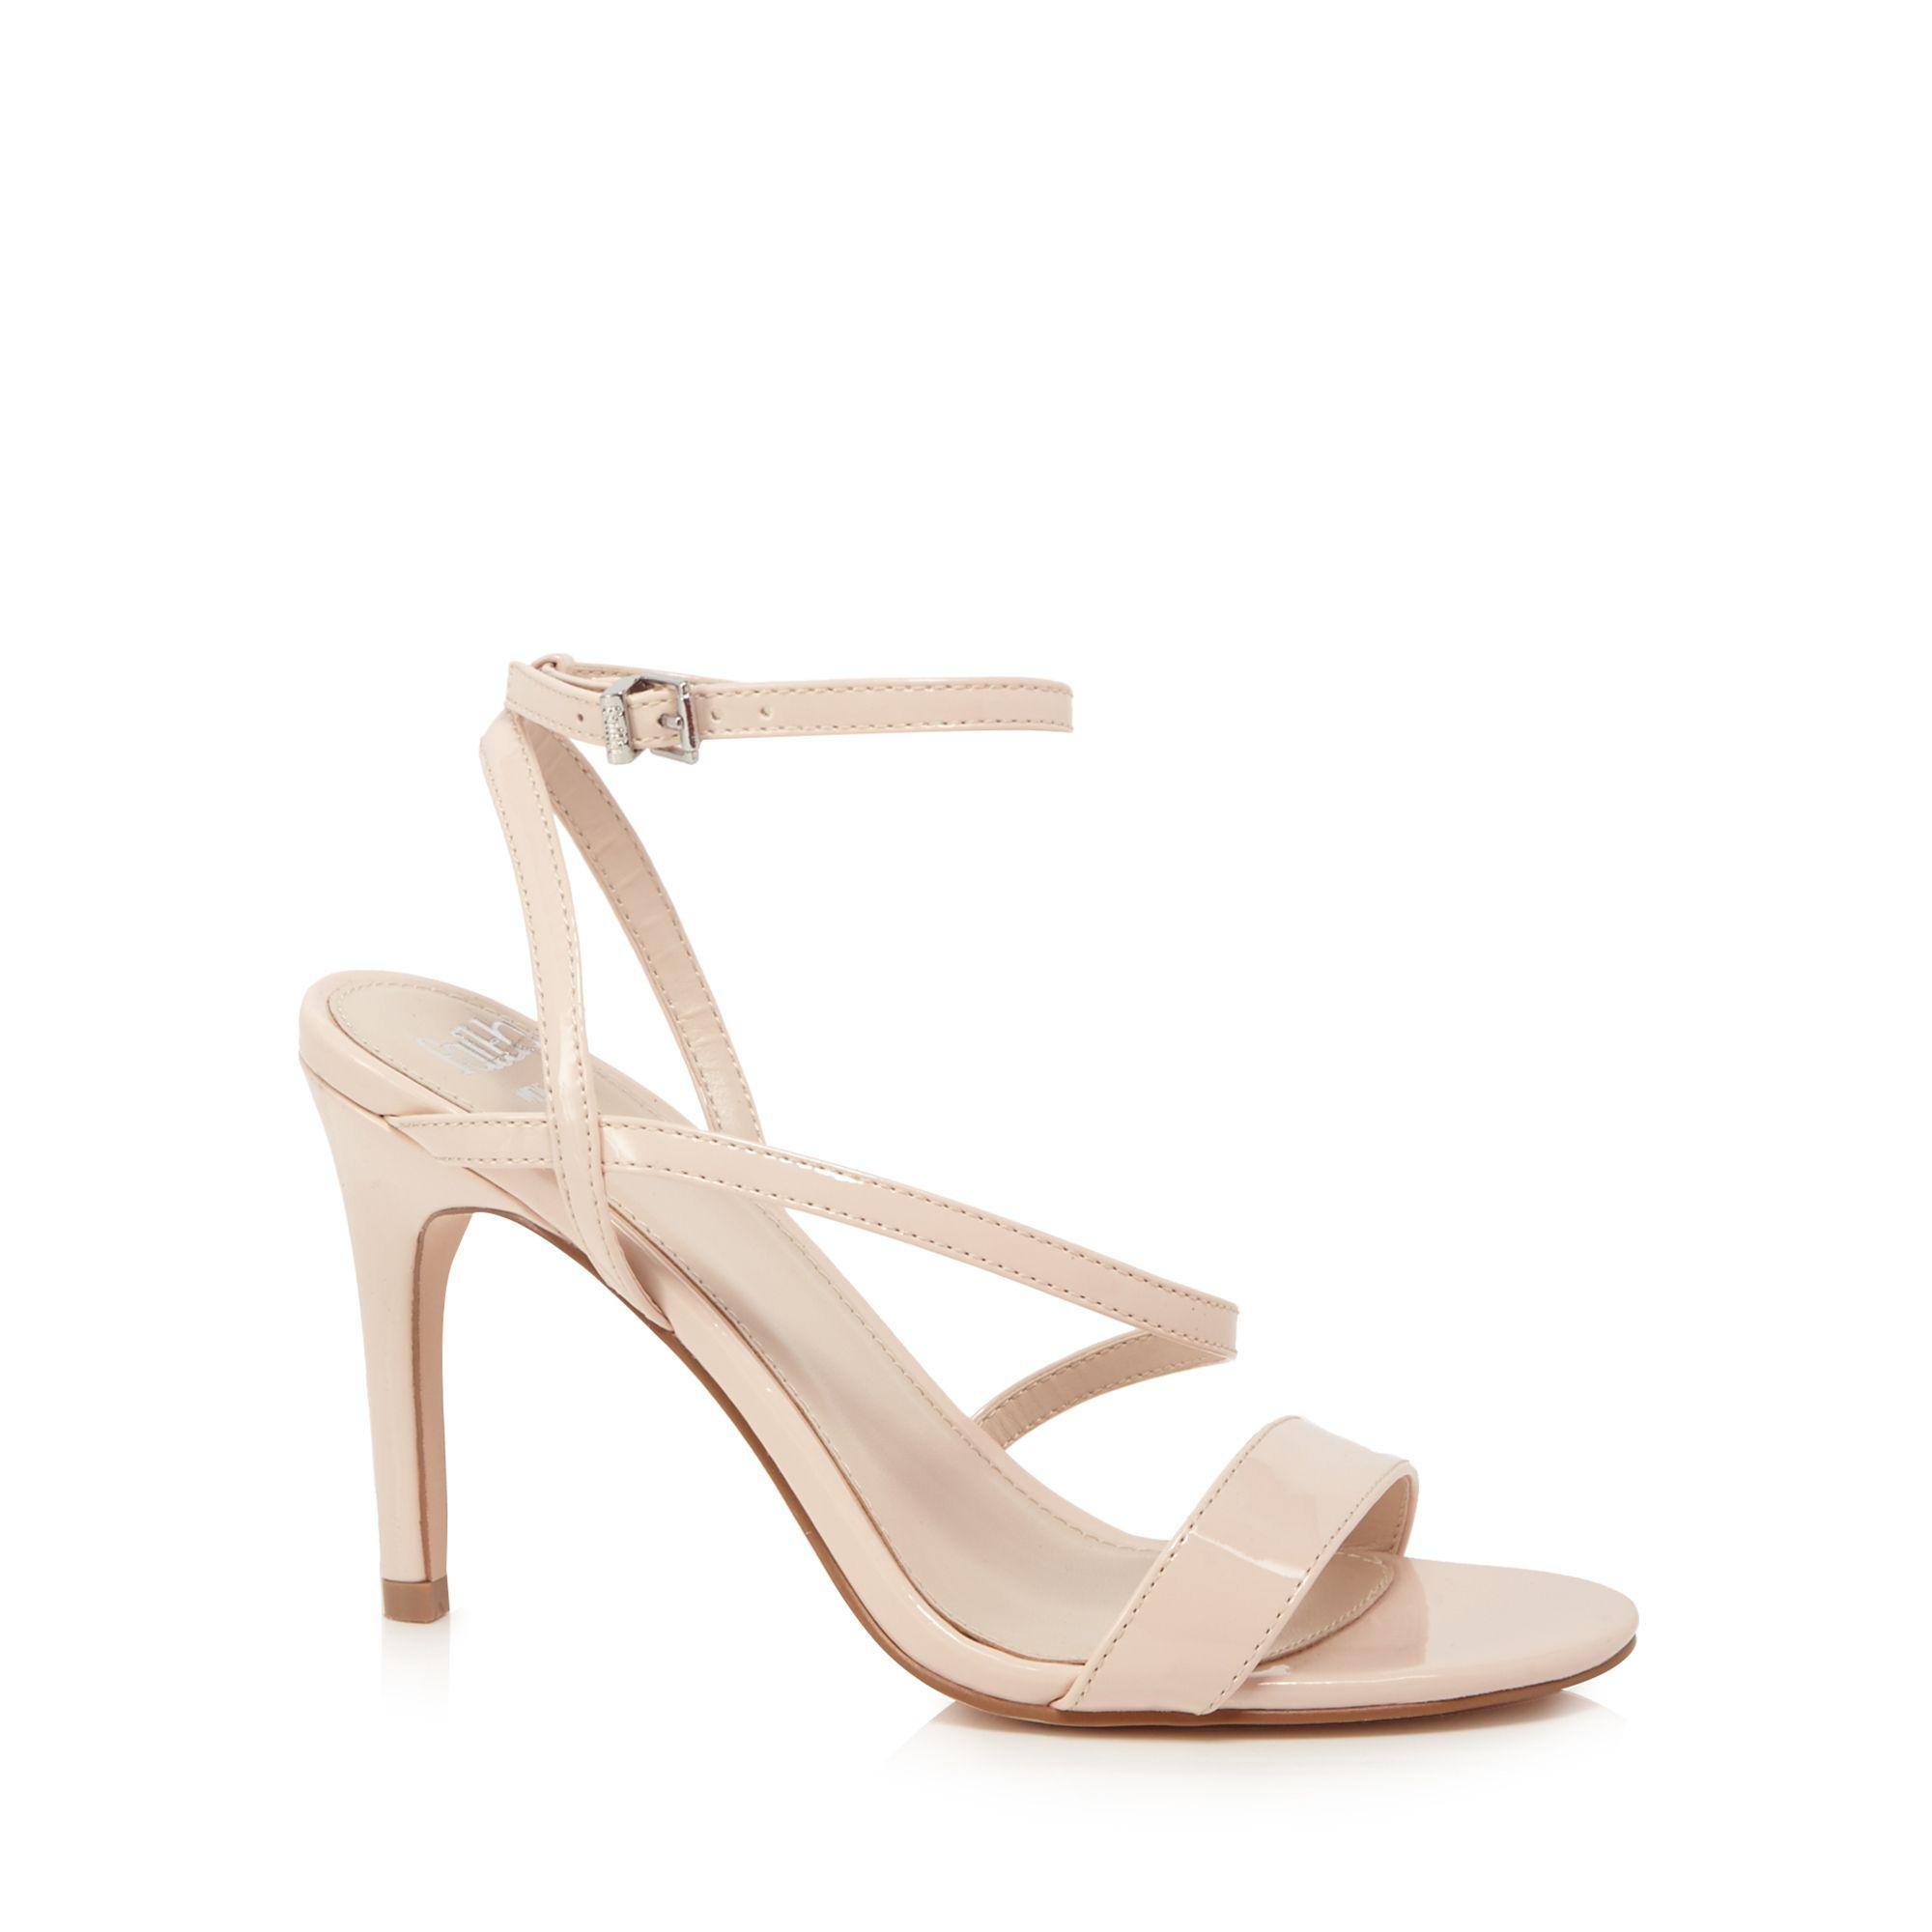 7984216605e1 Faith - Natural  delly  High Heel Wide Fit Ankle Strap Sandals - Lyst. View  fullscreen